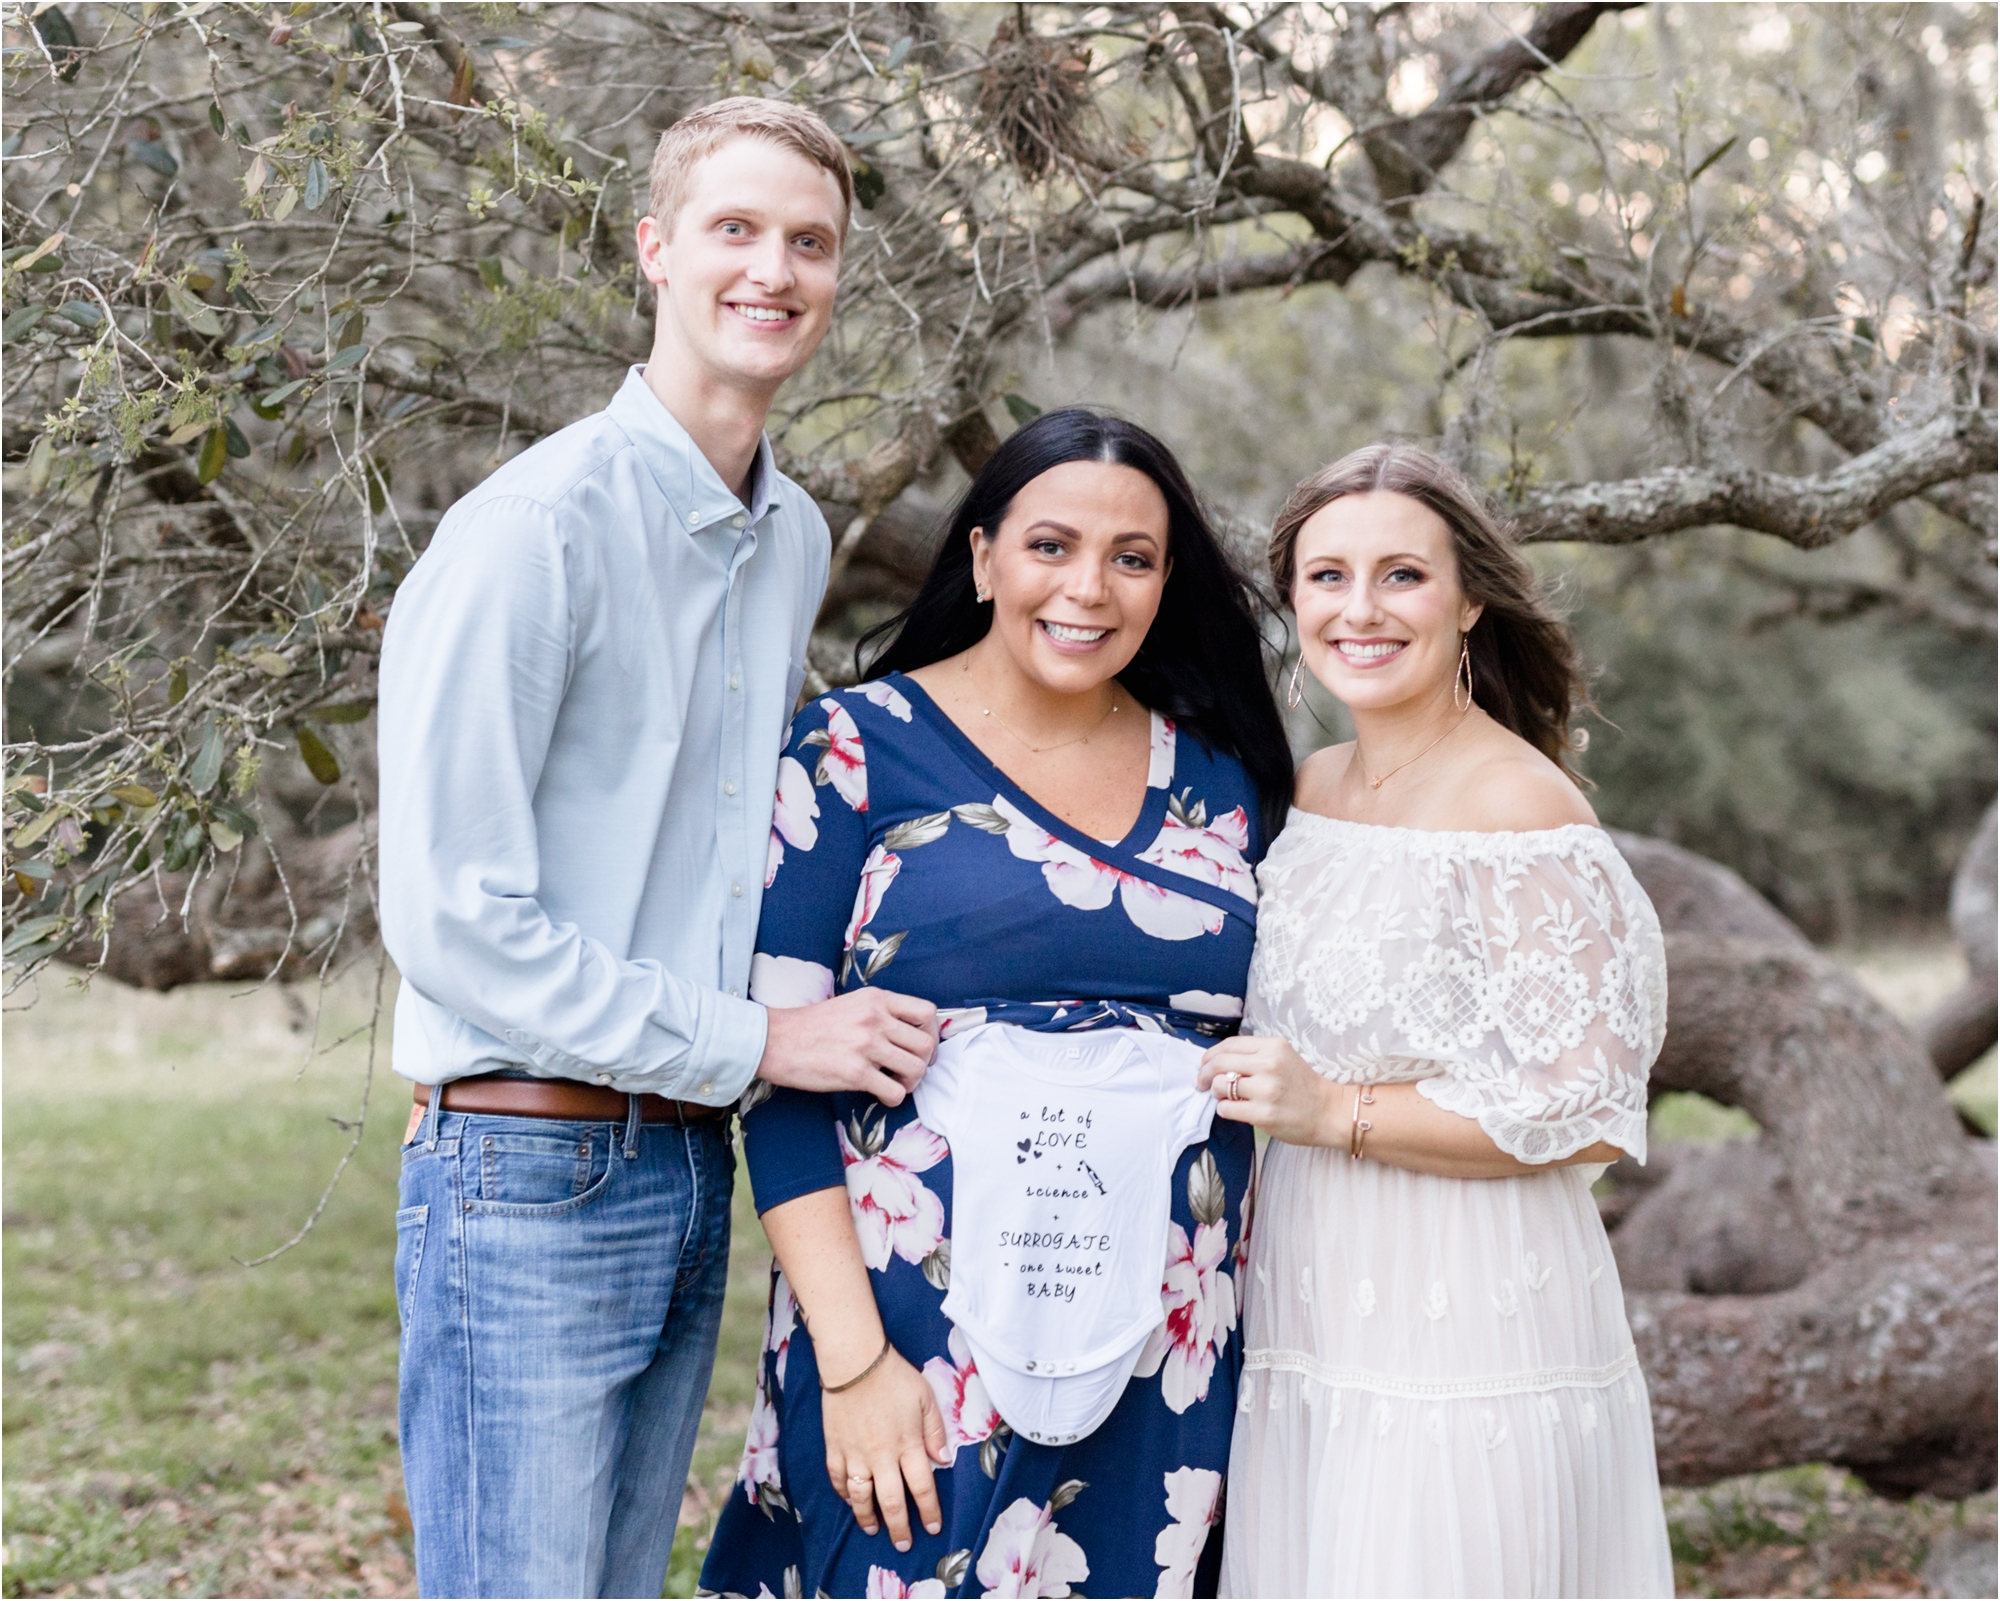 Surrogate mother with parents during maternity session in Houston. Photo by Kelly of Lifetime of Clicks Photography.